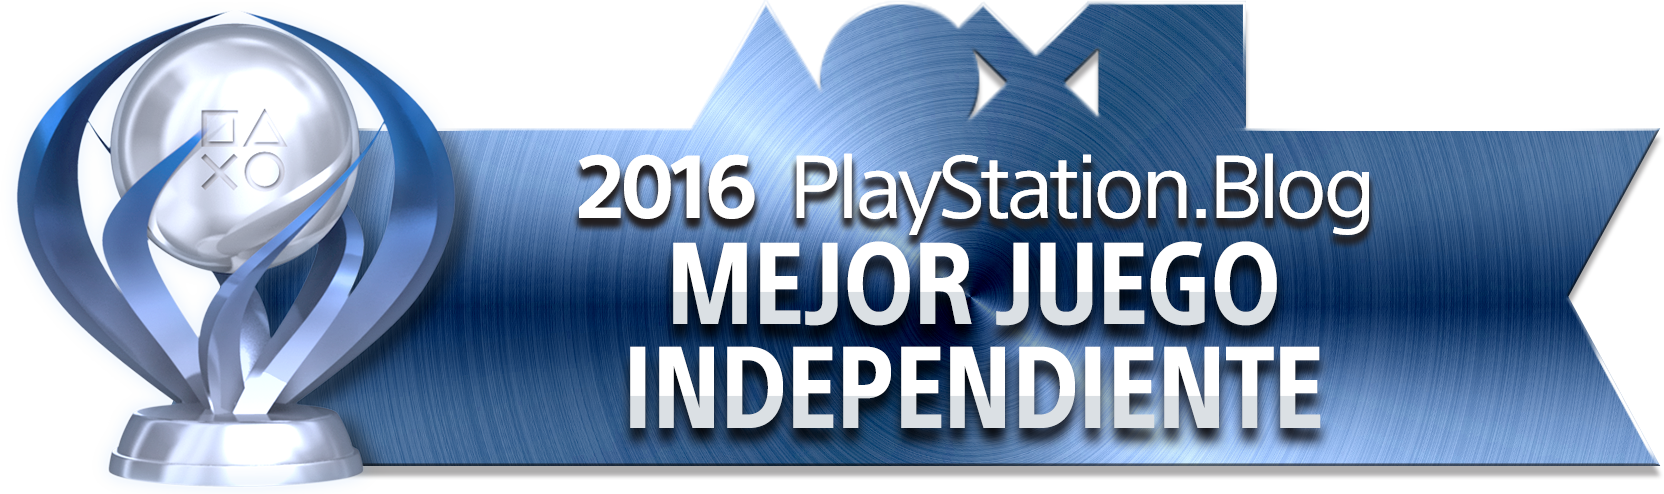 Best Independent Game - Platinum